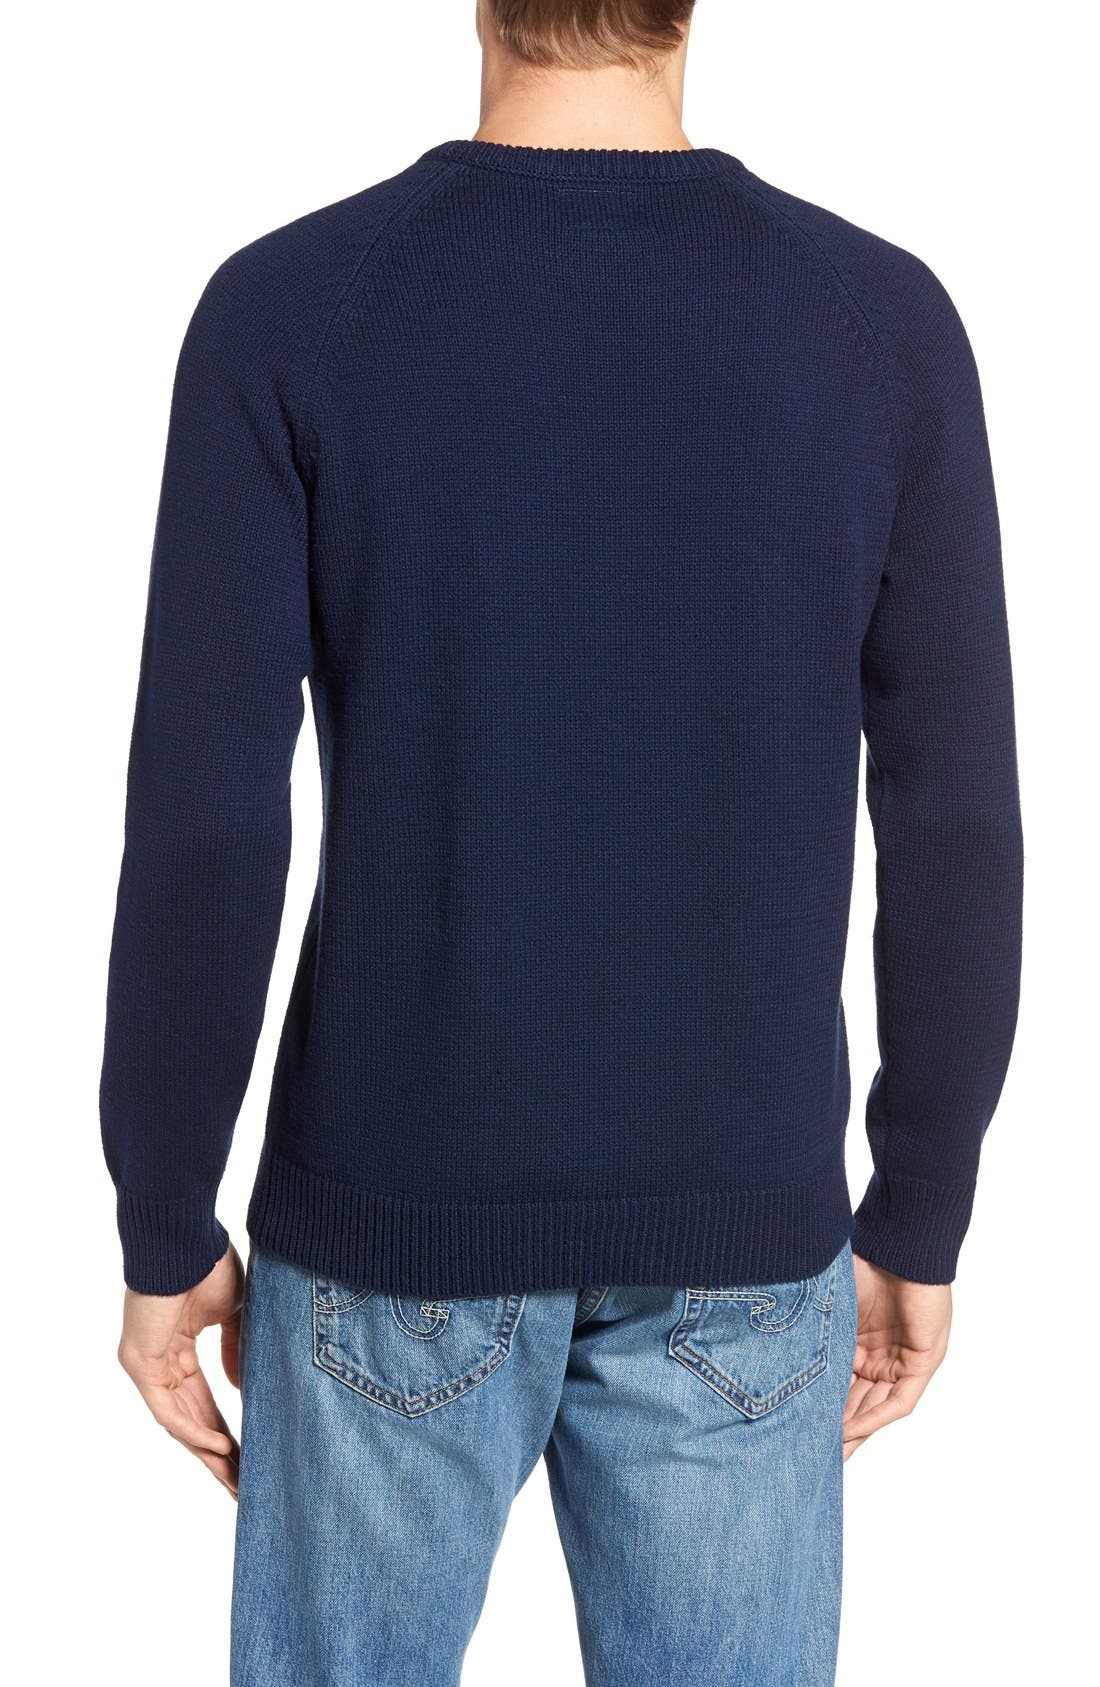 Yale Heritage Sweater,                             Alternate thumbnail 2, color,                             400